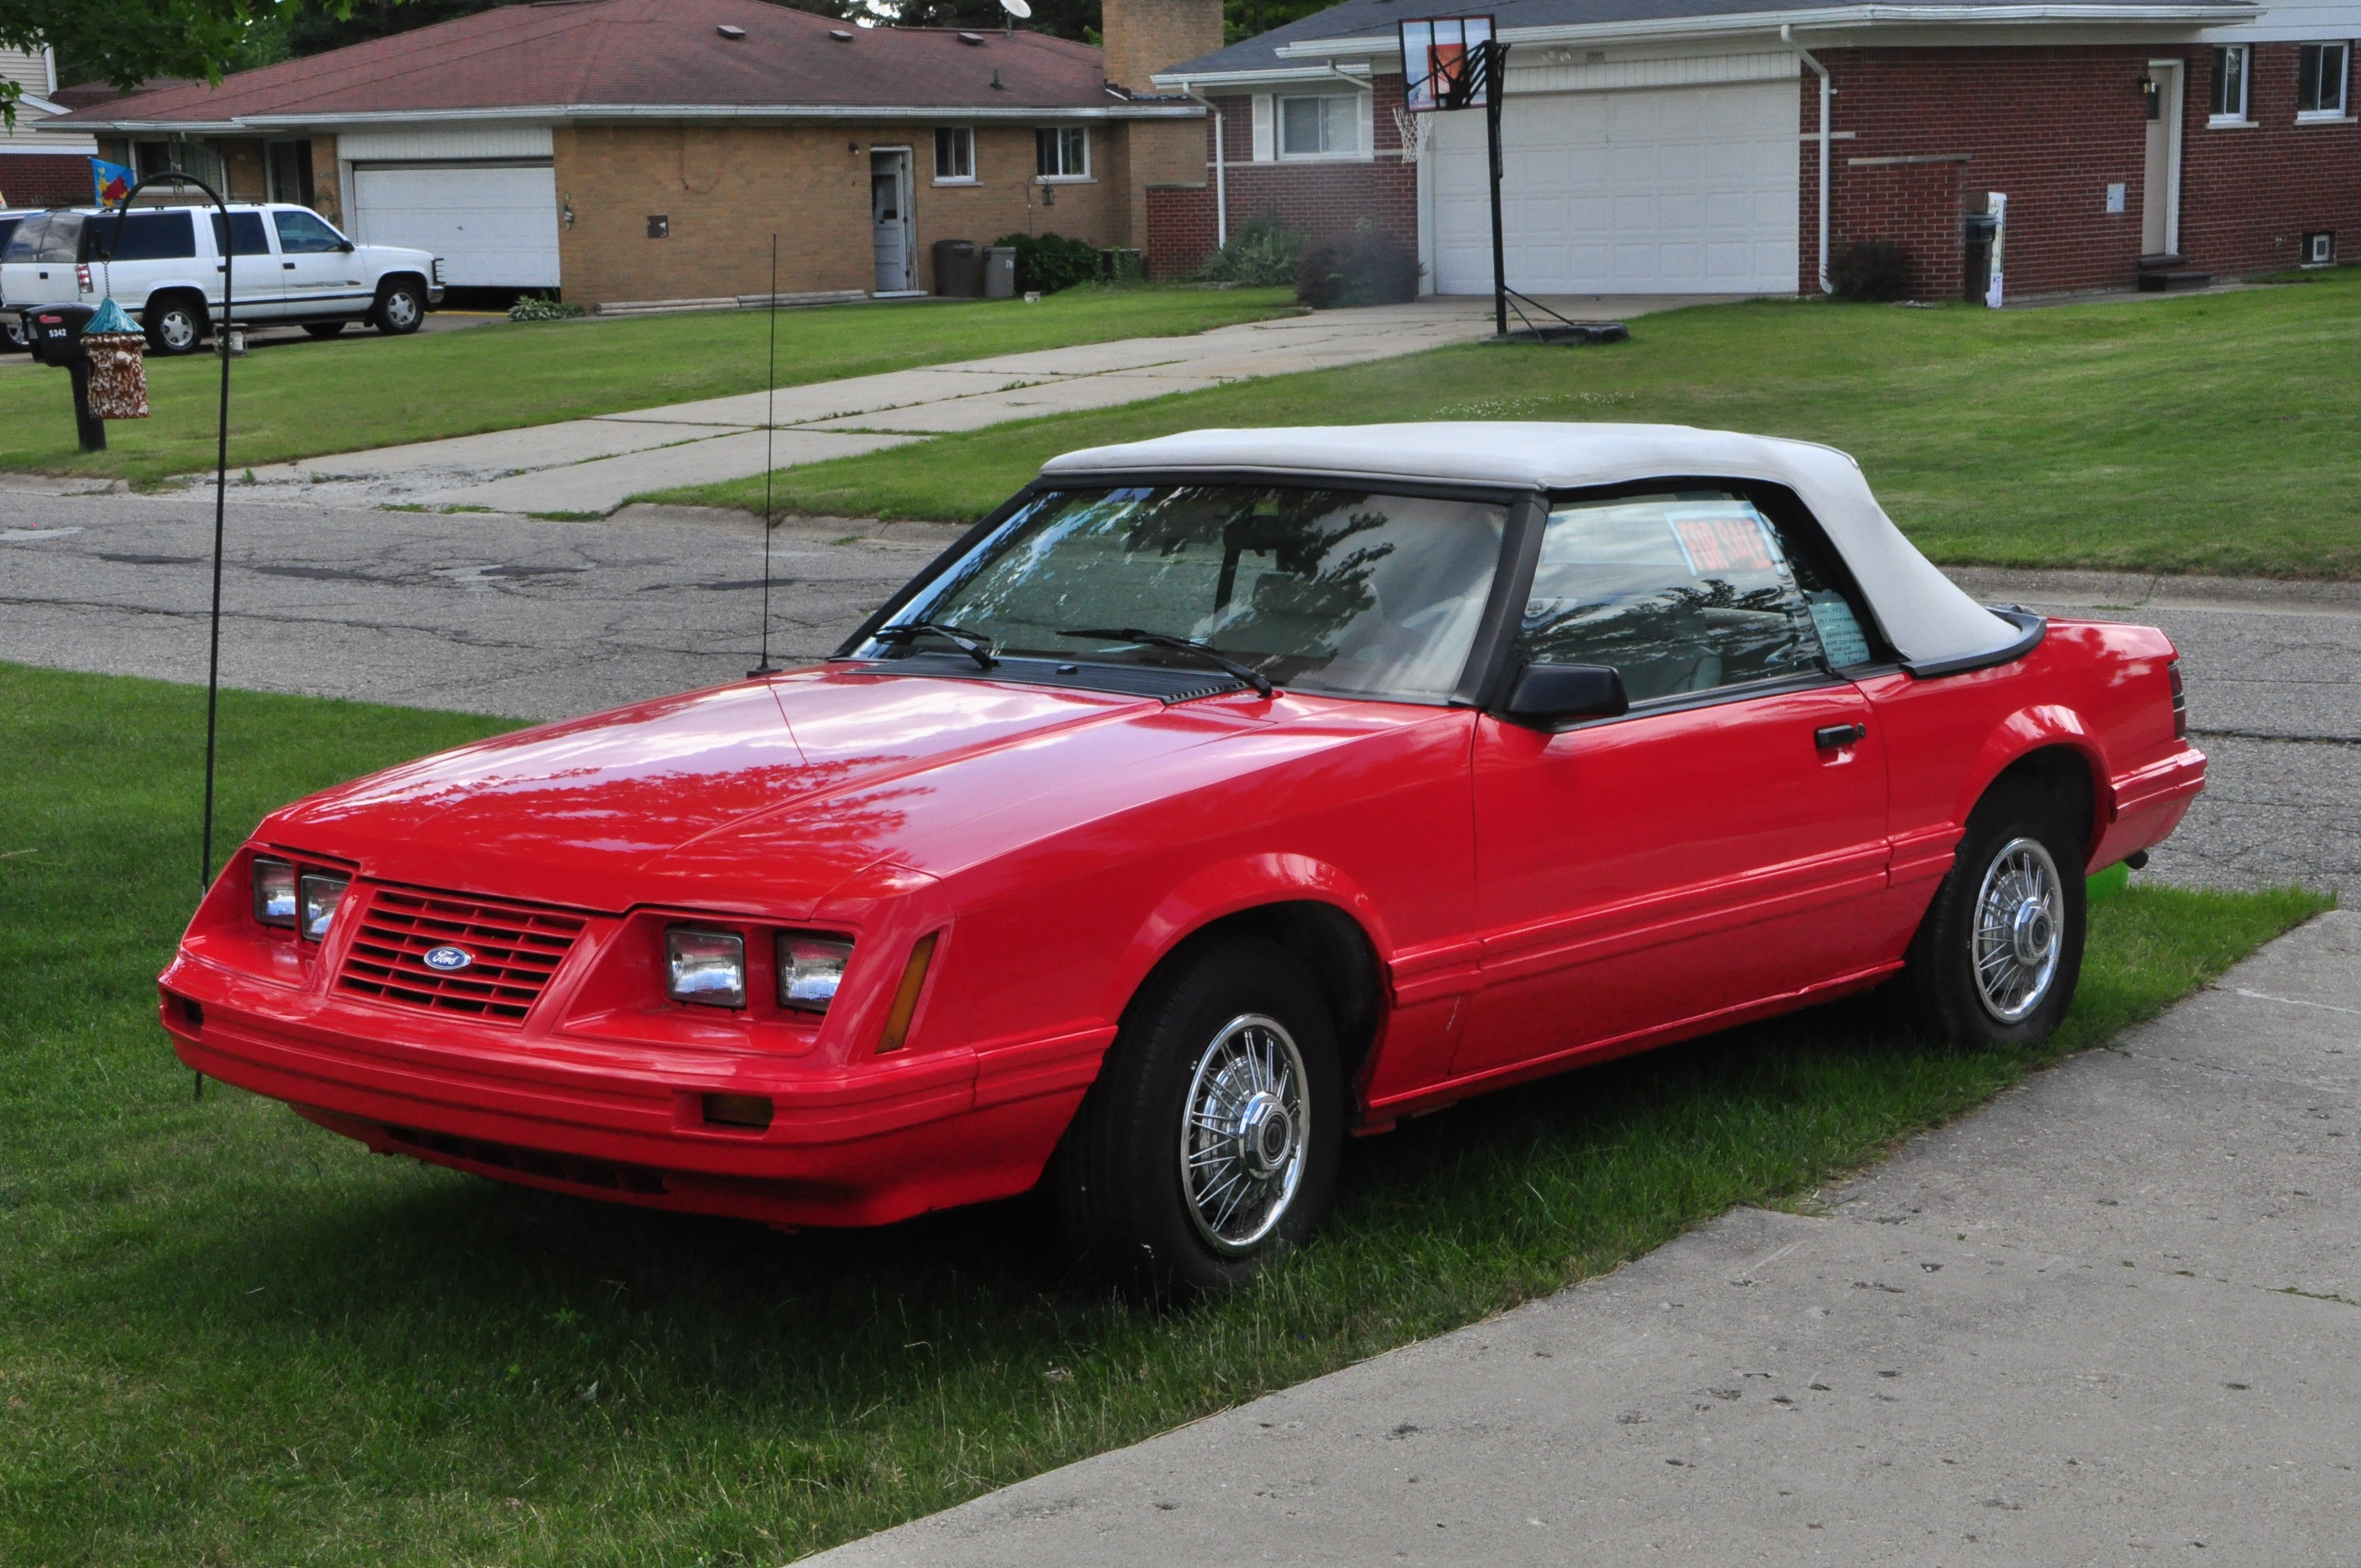 1983 ford mustang classics for sale classics on autotrader rh classics autotrader com 1980 ford mustang cobra turbo 1980 ford mustang cobra for sale